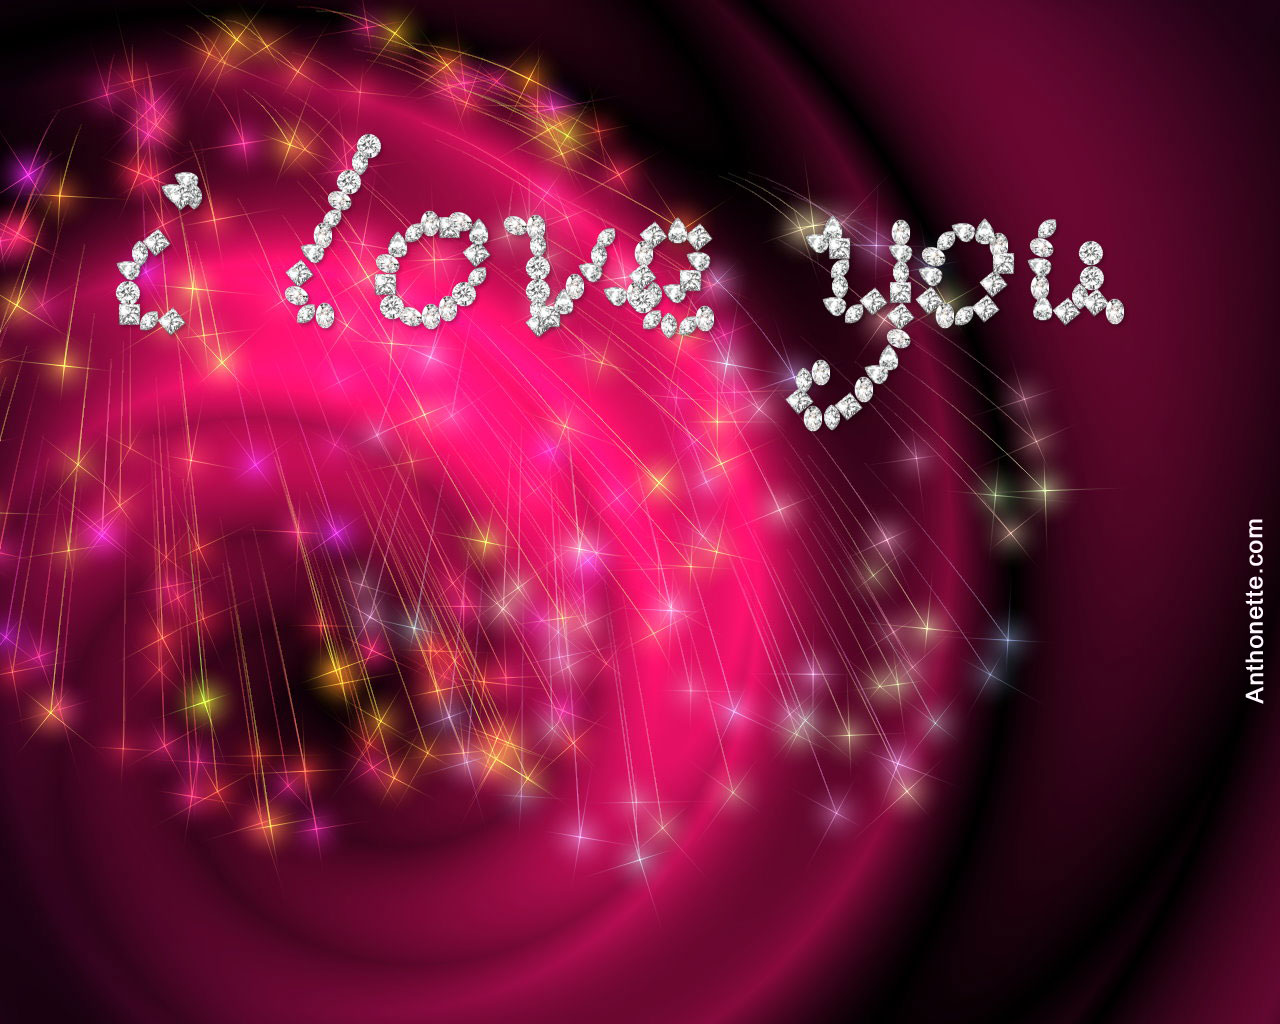 Love Wallpapers Animated Mobile : love wallpapers for mobile phone -mobile wallpaper part 4 ...